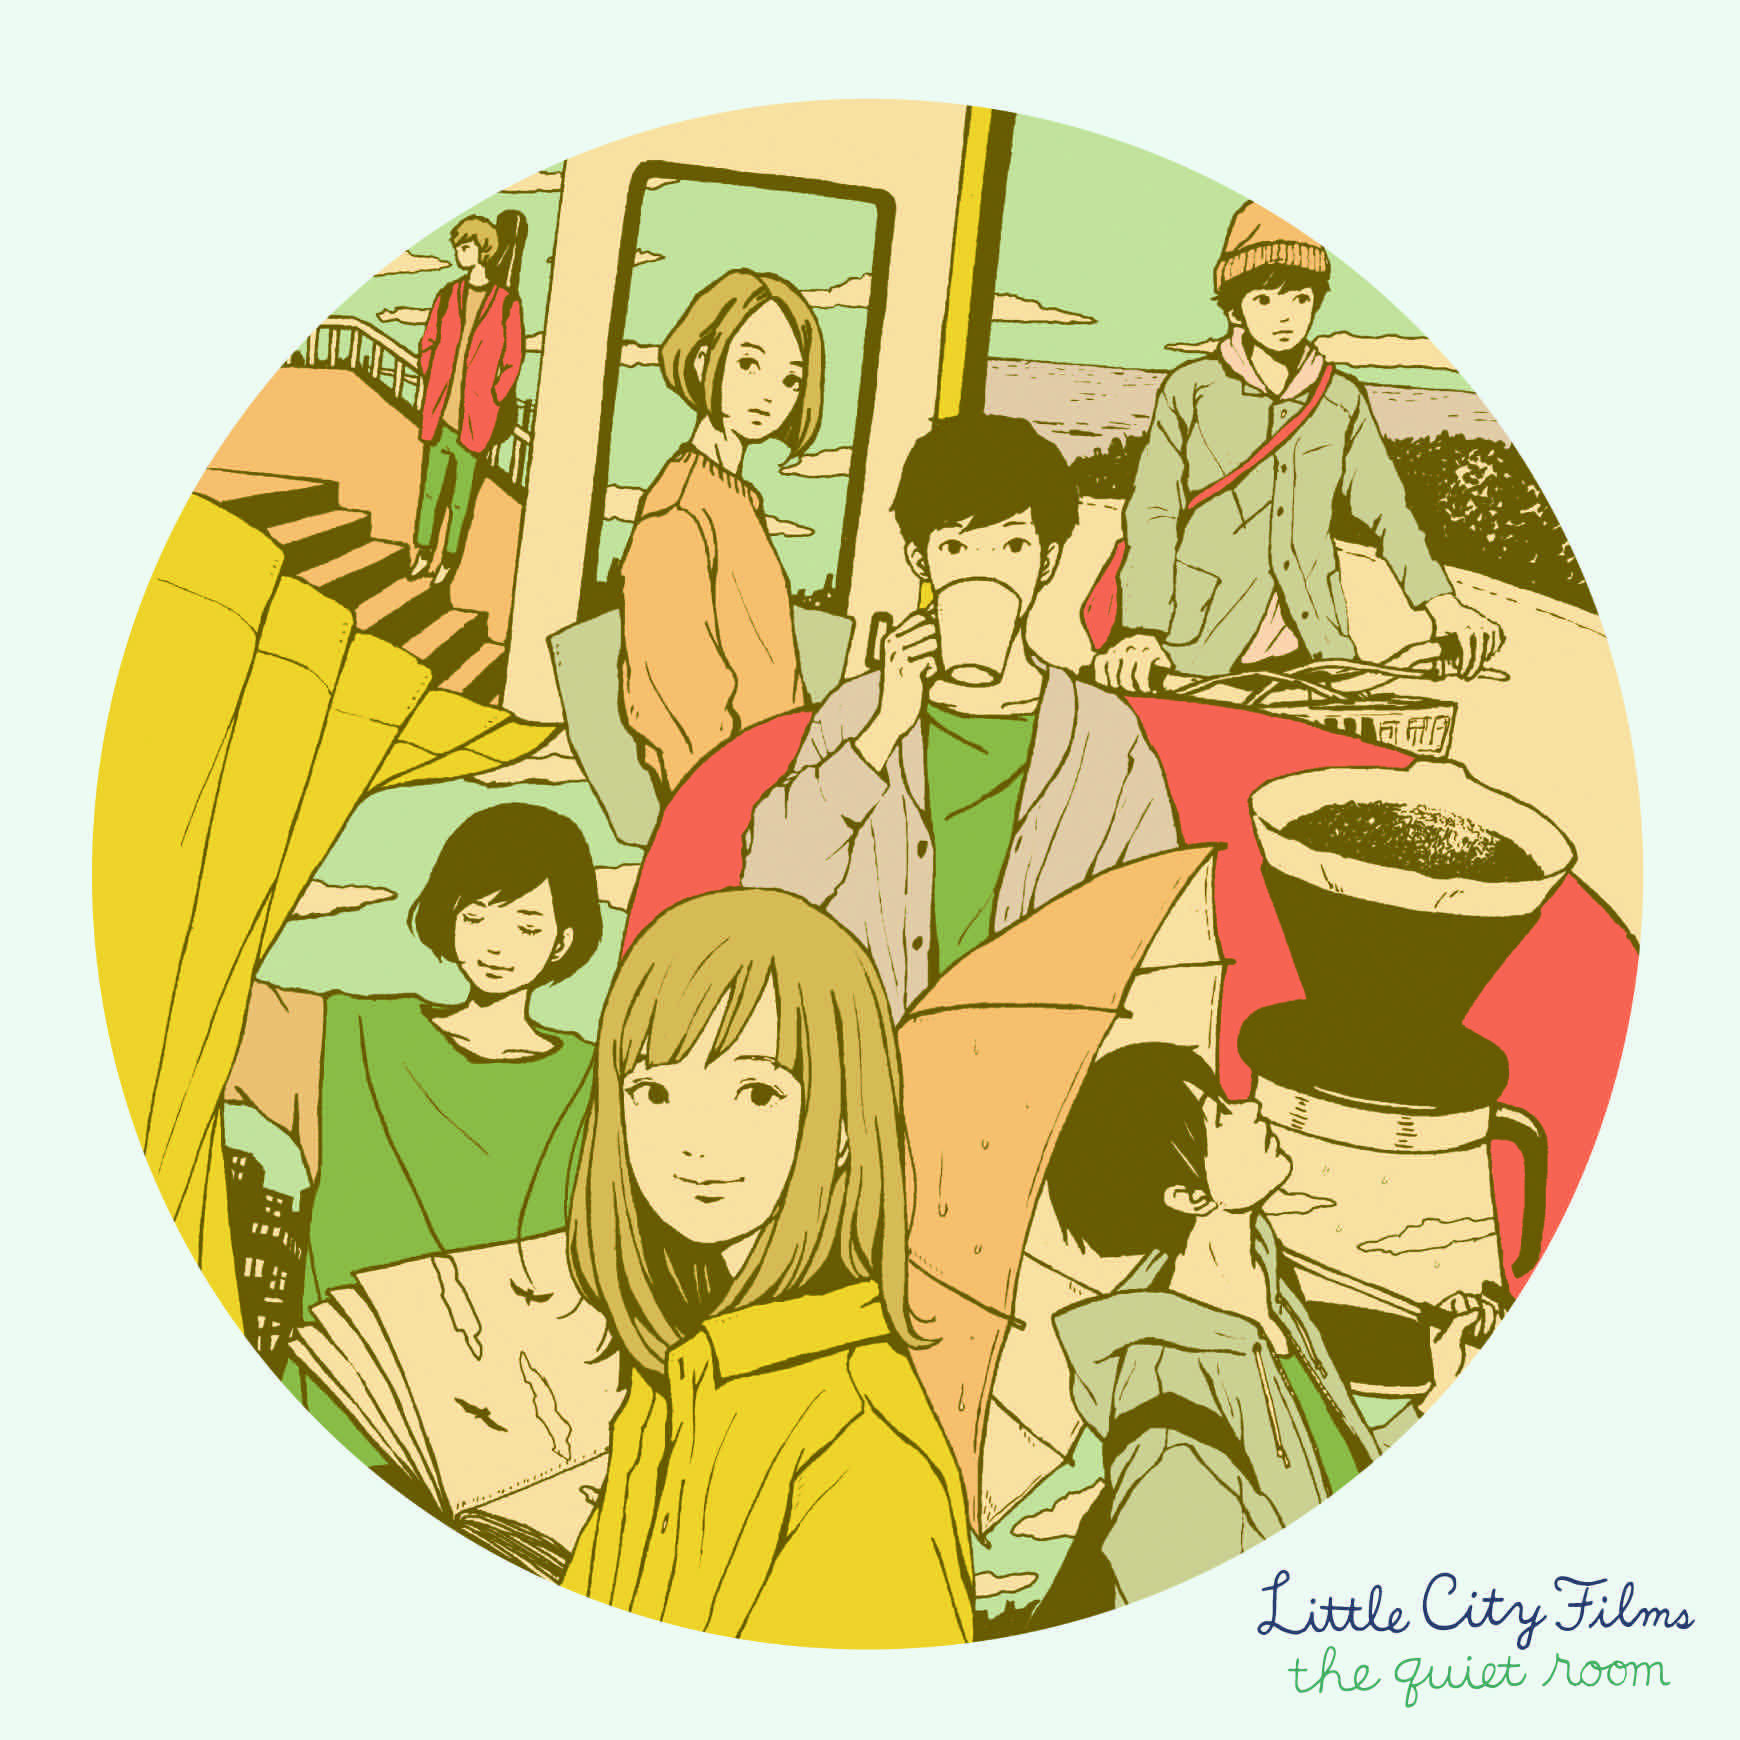 the quiet room『Little City Films』